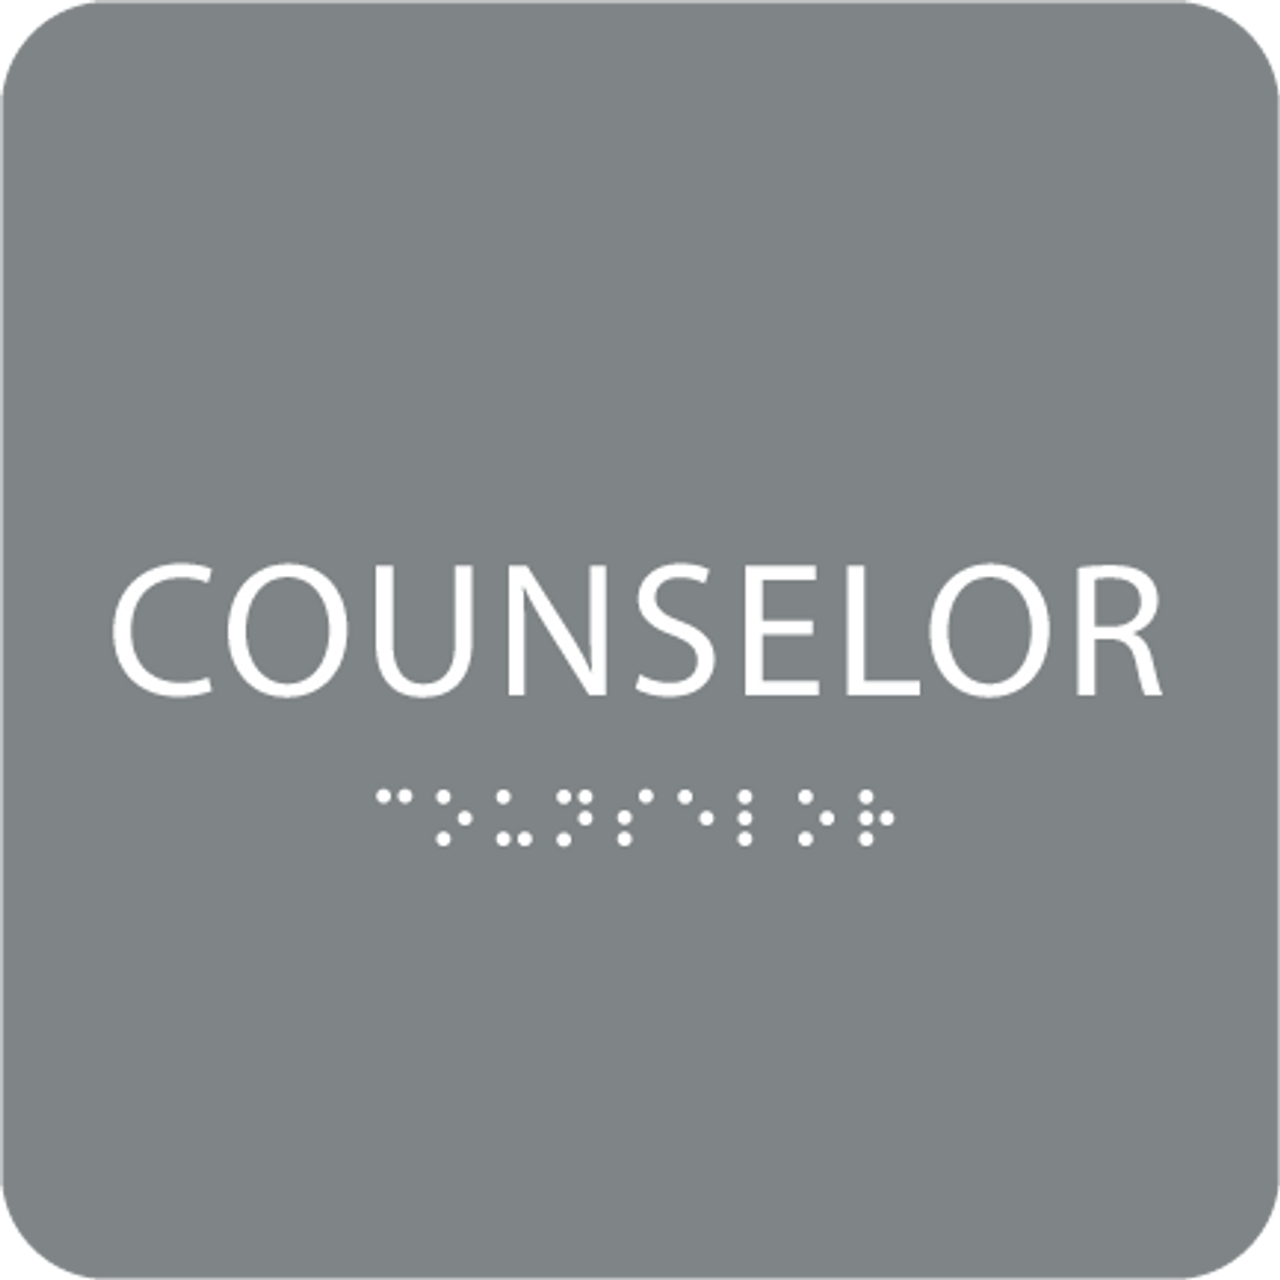 Grey Counselor Tactile Sign